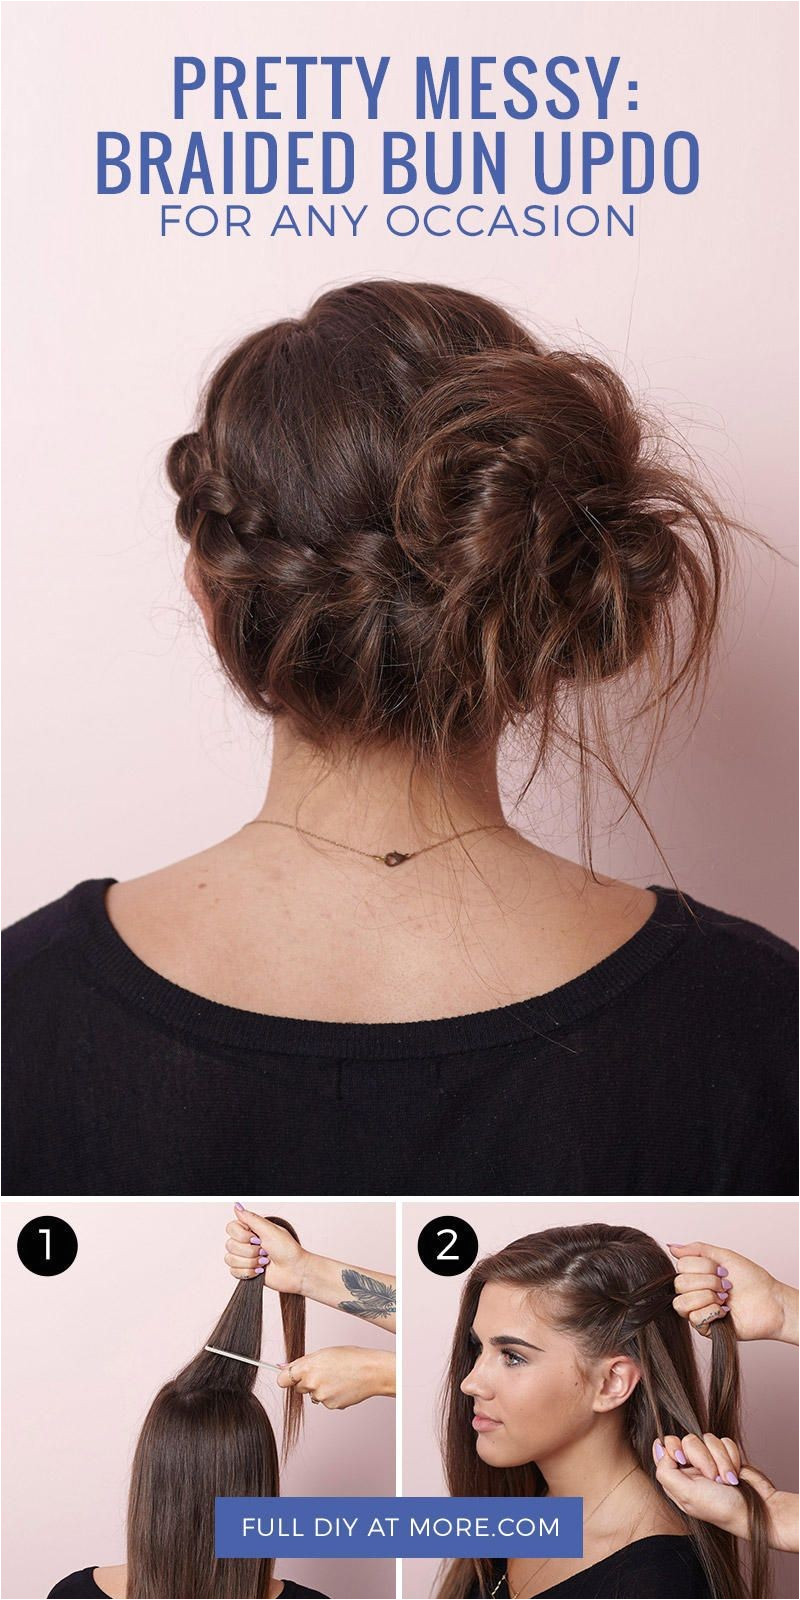 Girls Hairstyles for Parties Best Pretty Messy the Braided Bun Updo for Any Occasion